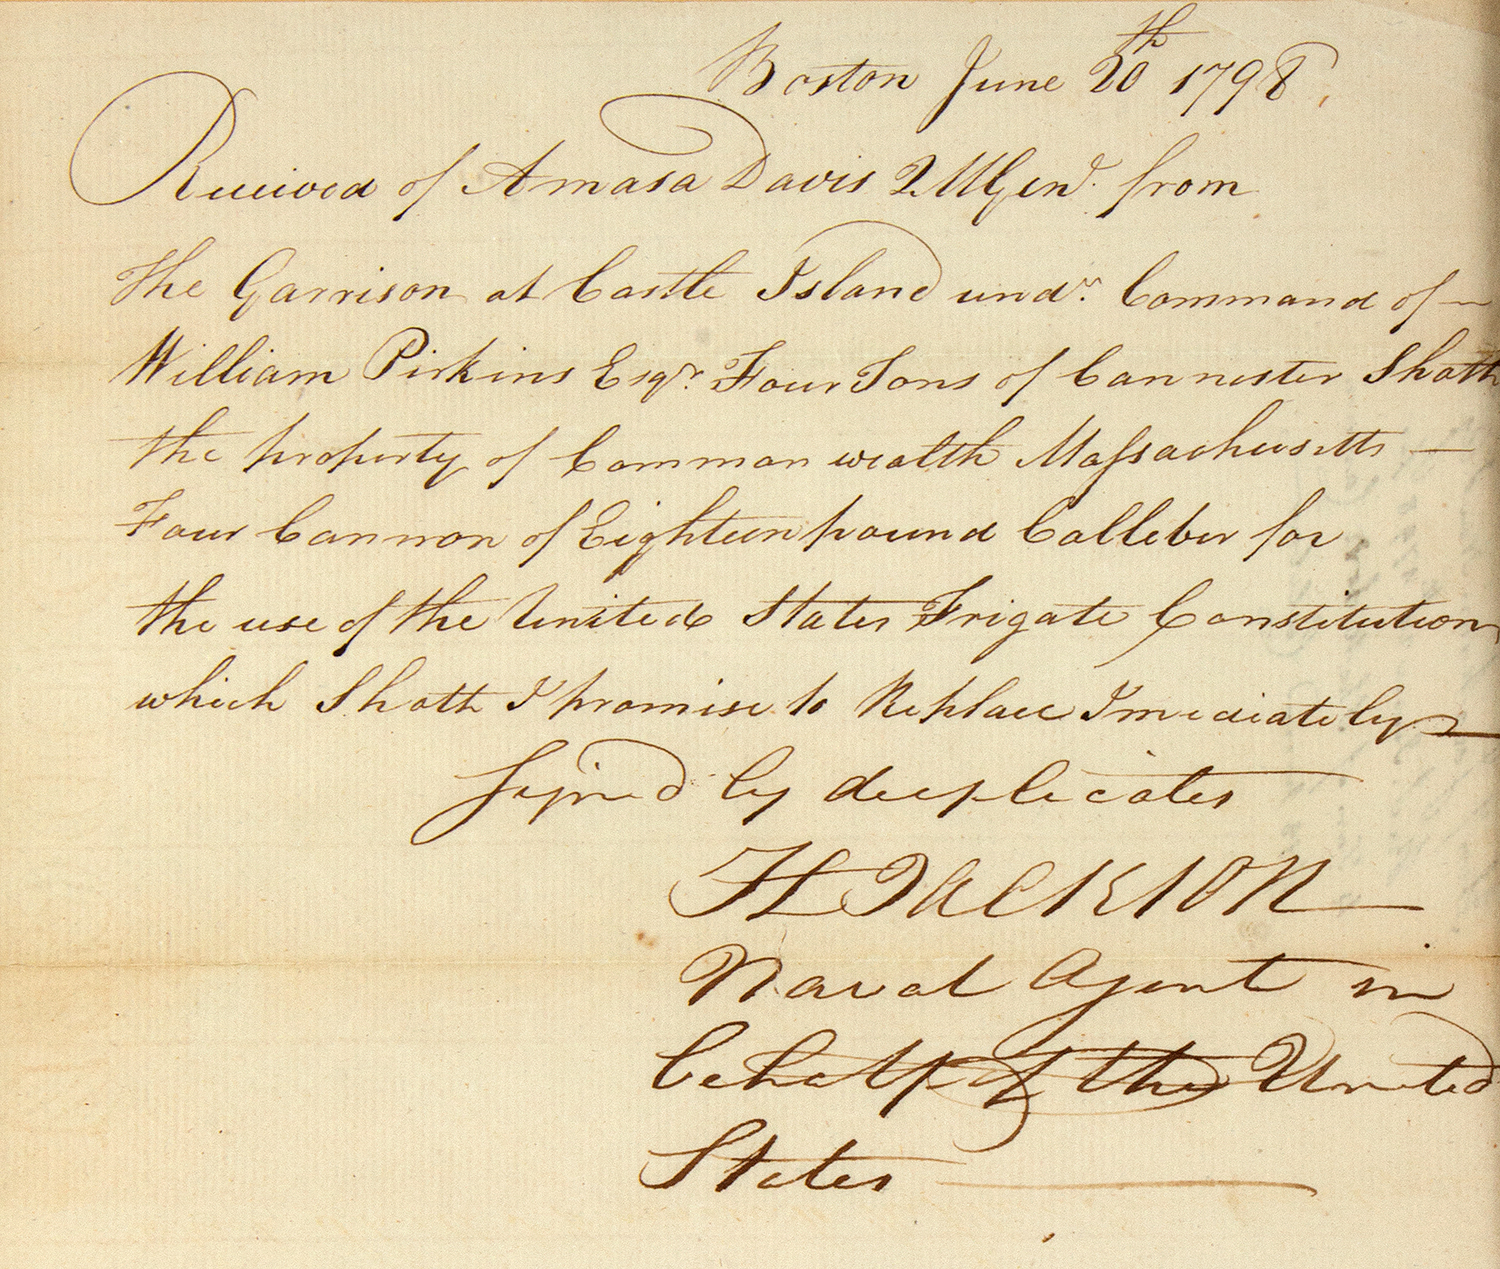 History, Military, American Naval History, Mss. Document, USS Frigate Constitution Boston June 20, 1798 Receipt:  United State Naval Agent borrows Four Ton of Canister Shot and Four Eighteen-pound Cannon  for use on the USS Frigate Constitution., document view